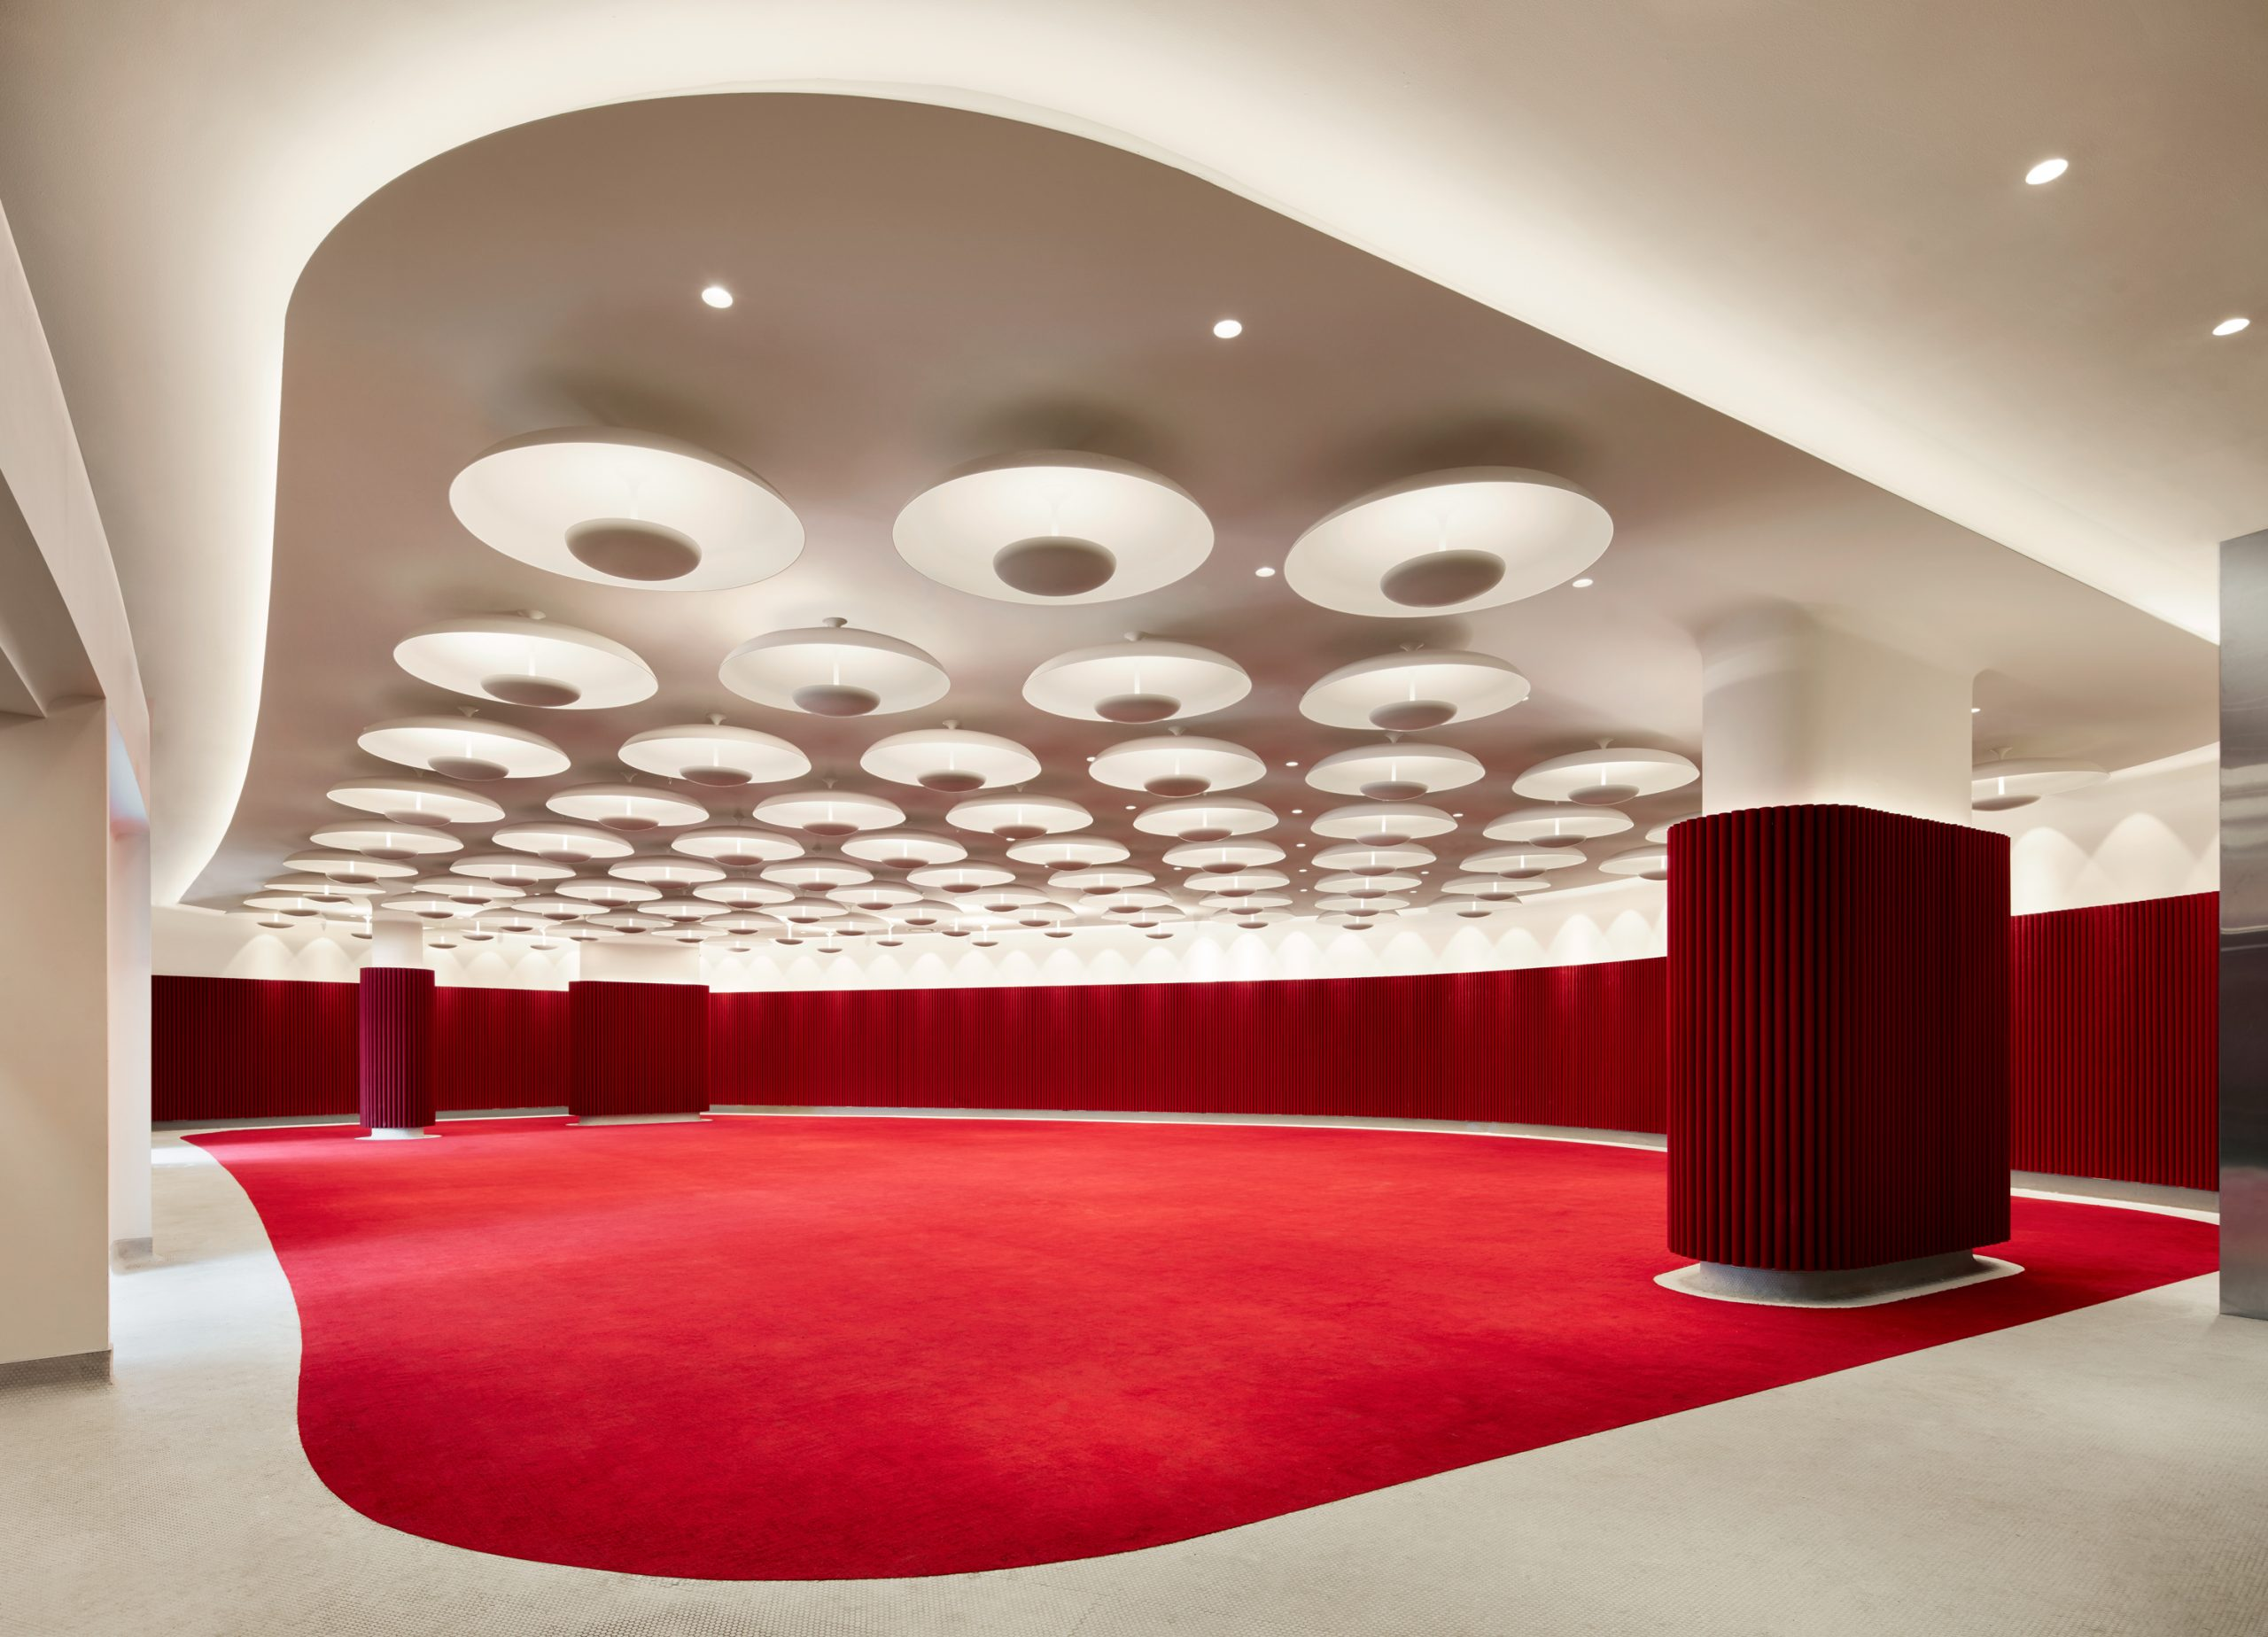 Interior image of ballroom with red carpet and walls and white ceiling with round lights